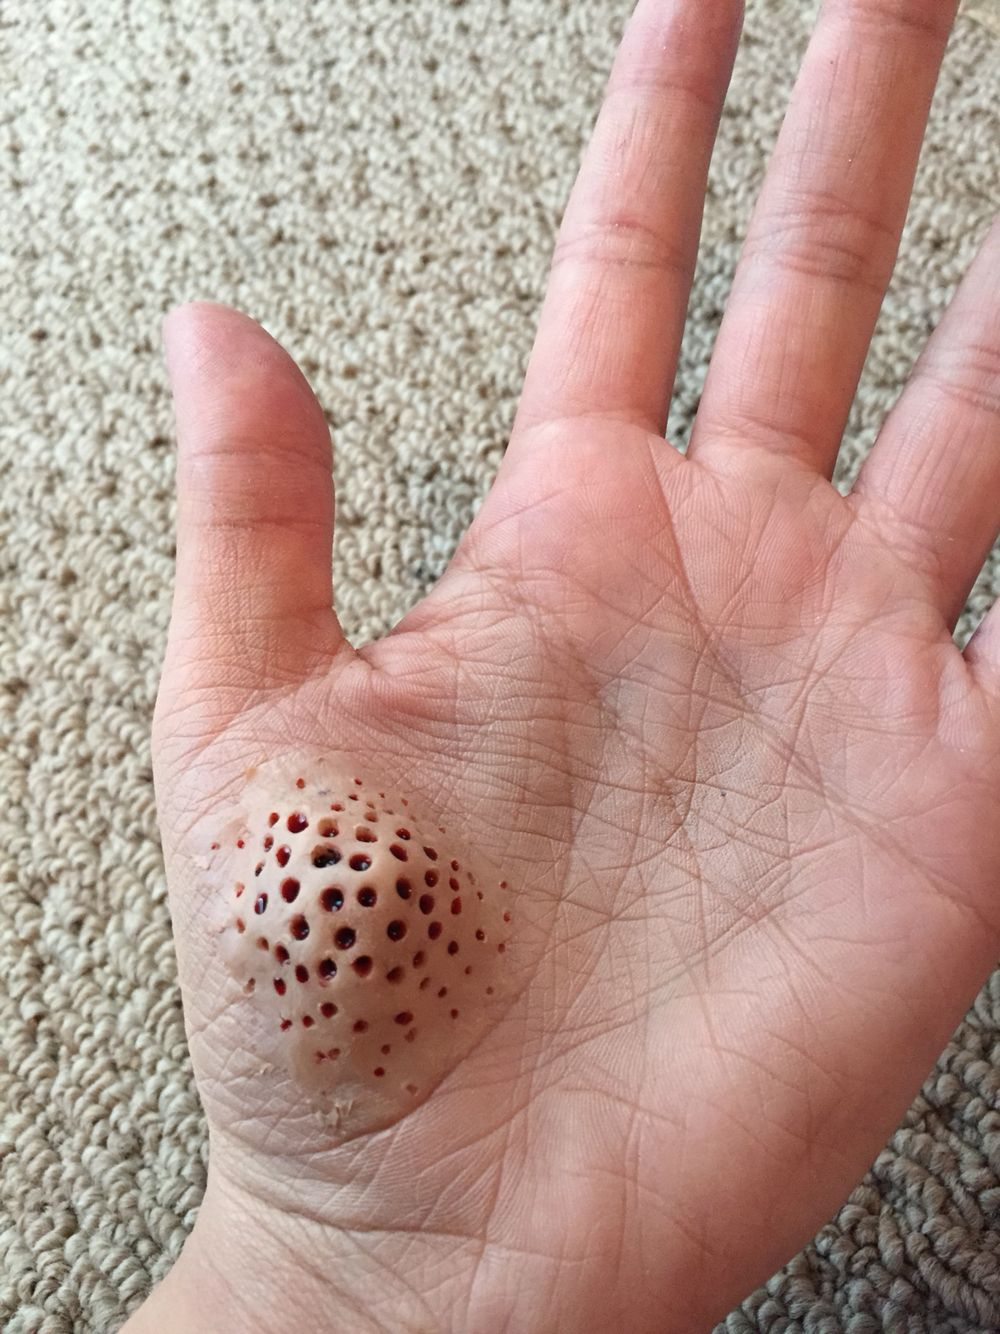 Trypophobia: fear of holes.-----I'm really getting